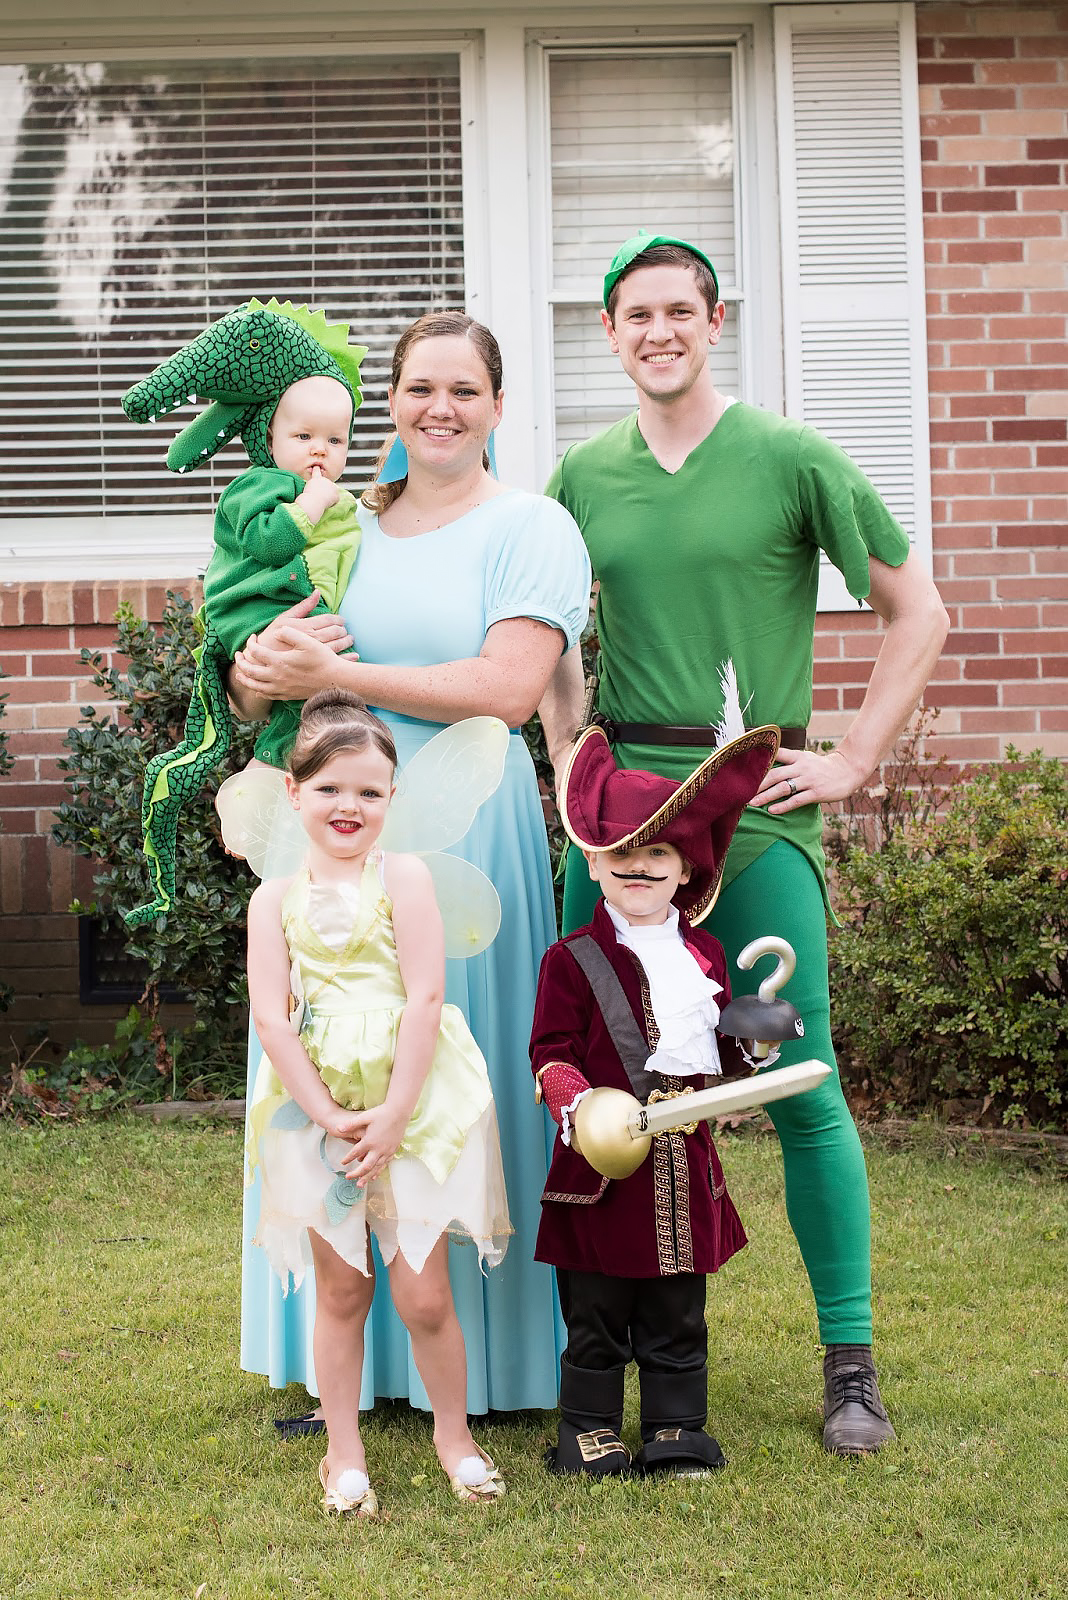 Best Halloween Costumes for Family and Kids, Peter Pan Family Theme halloween Costume, Best Homemade Costumes || Darling Darleen